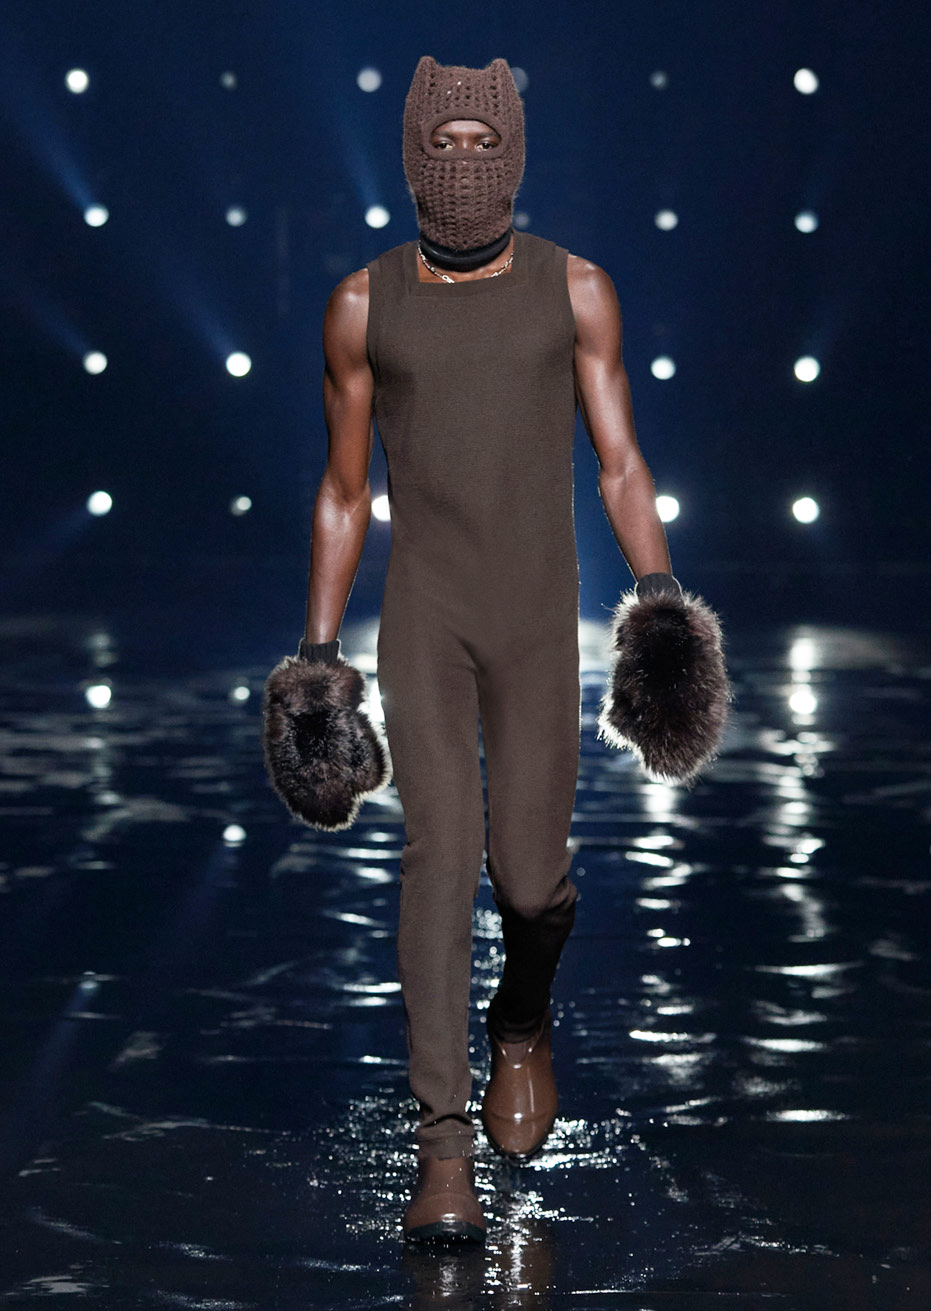 Givenchy's newest line is future-forward and full of anthropomorphic sensuality